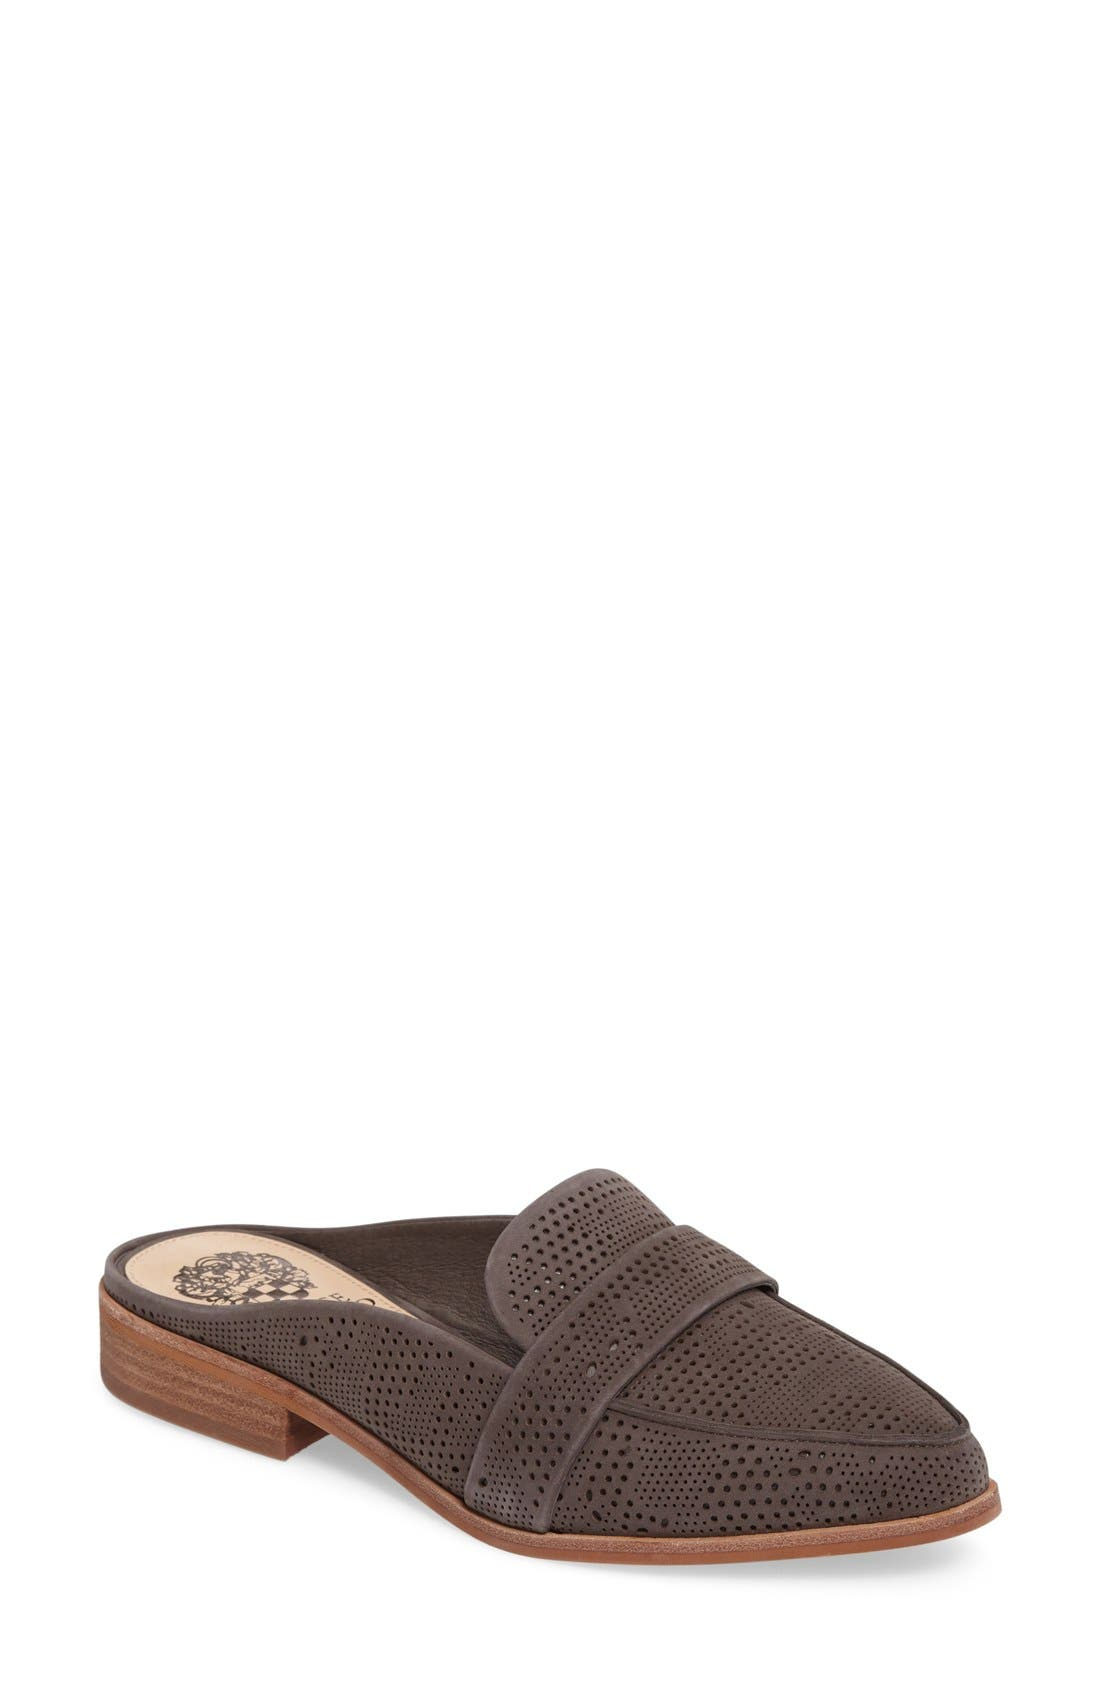 Kaylana Loafer Mule,                         Main,                         color, Greystone Nubuck Leather